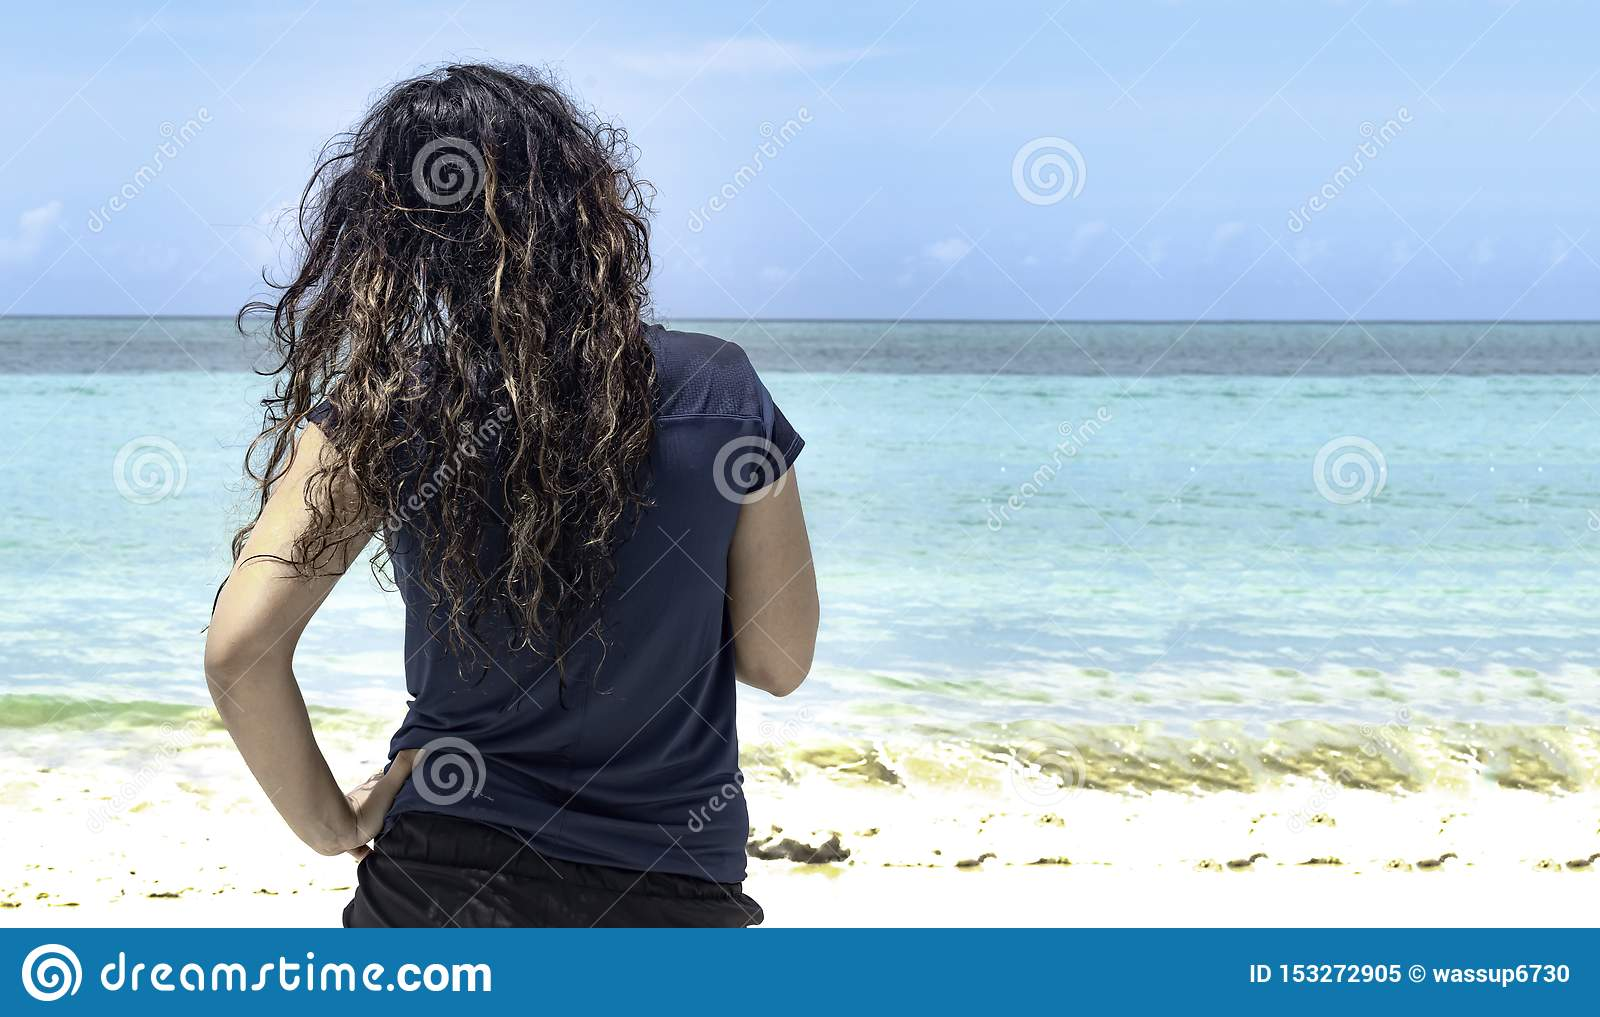 Young Female Lifeguard, with beautiful curly hairs observing swimmers safety, the calm sea of turquoise water, with hands on hips